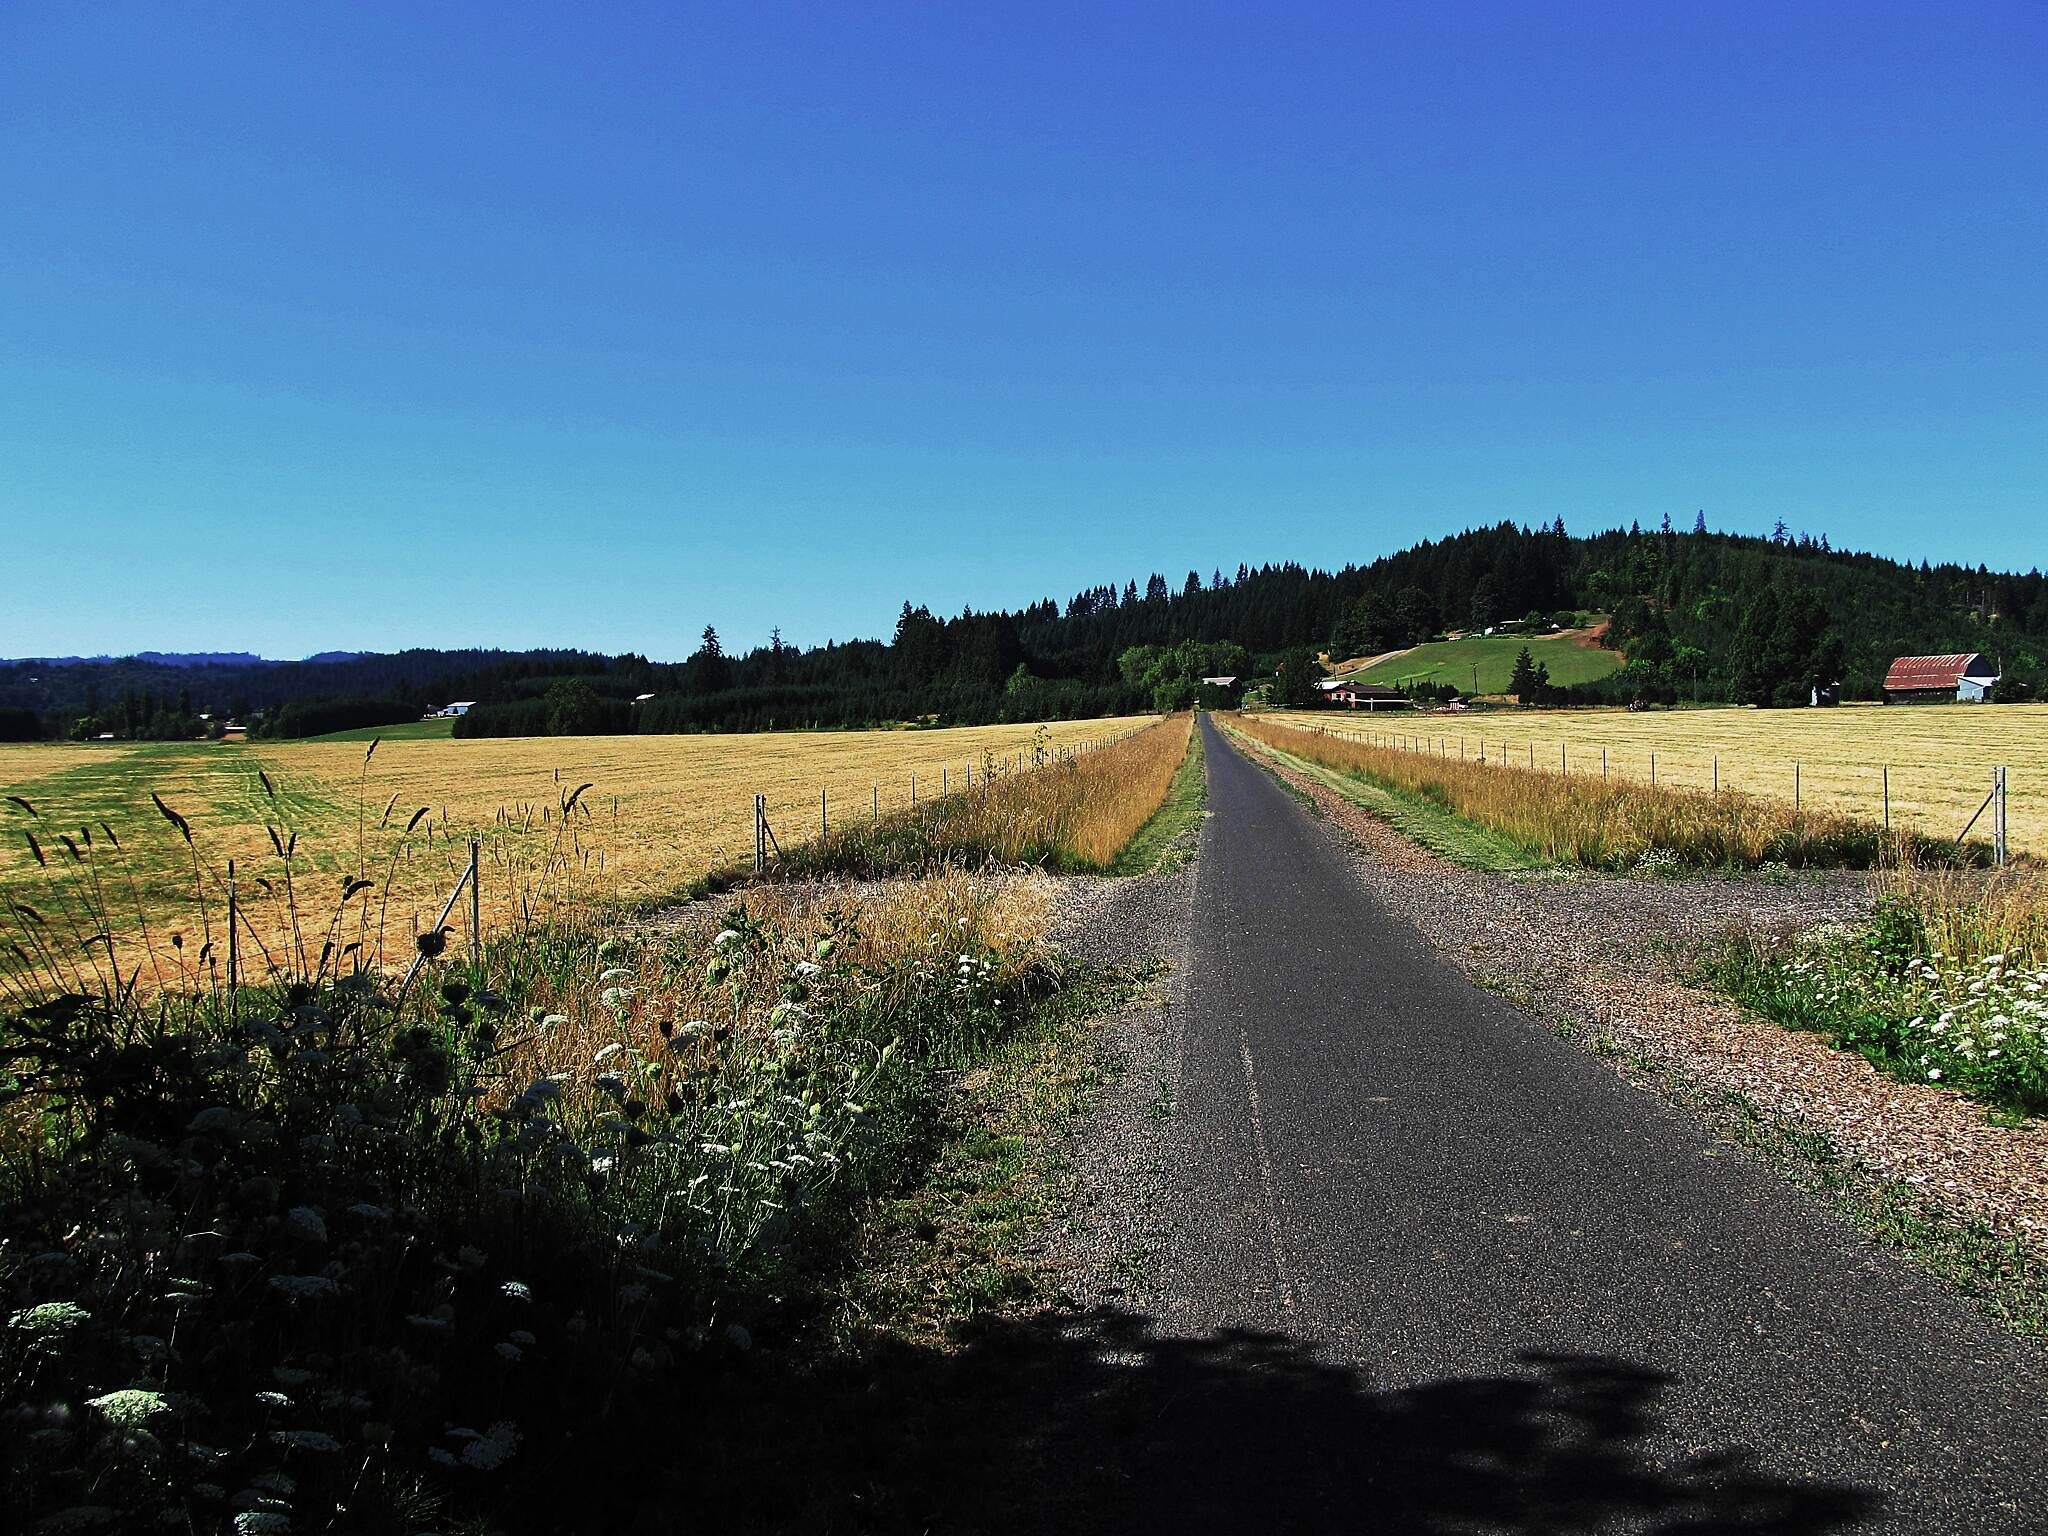 Banks-Vernonia State Trail Before the climb.... The last 'level' stretch before beginning the long climb up into the Costal Range of mountains.